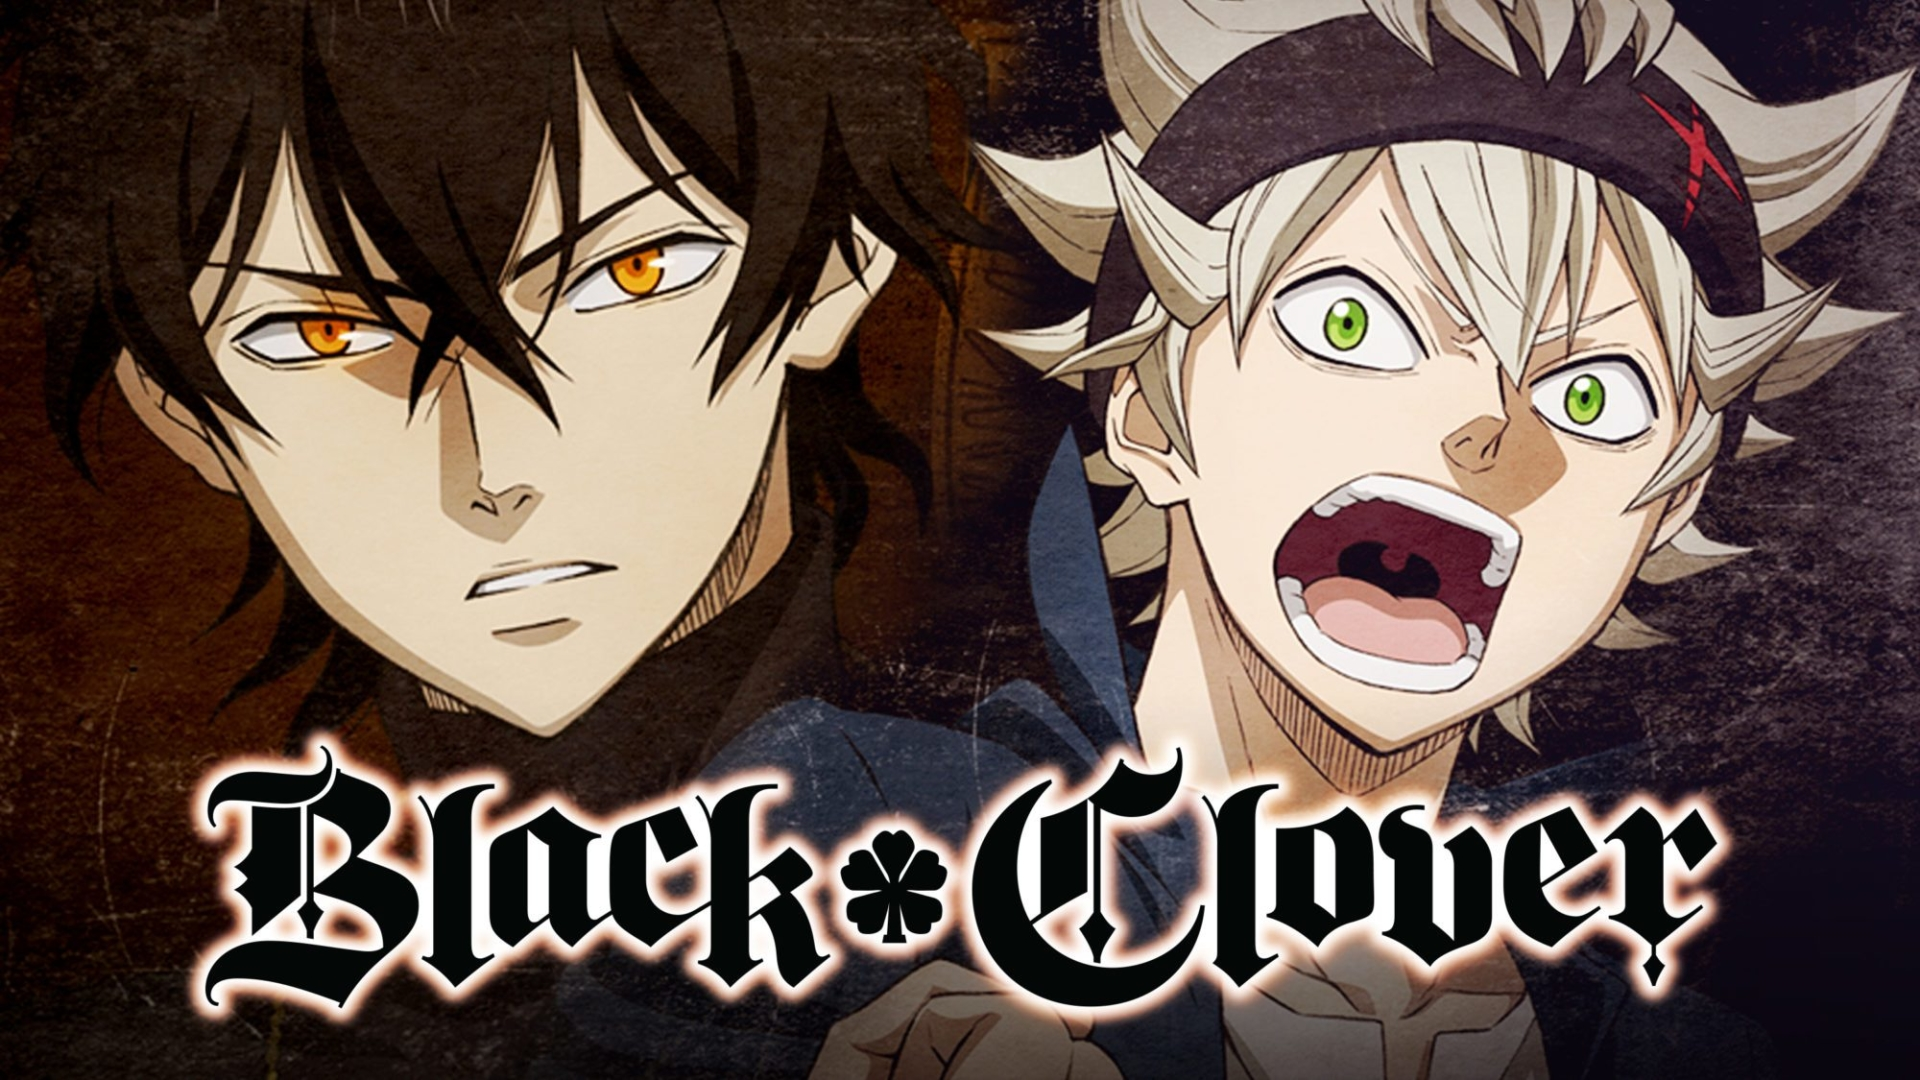 Black Clover Chapter 280 Release Date, Raw Scans and Read Online